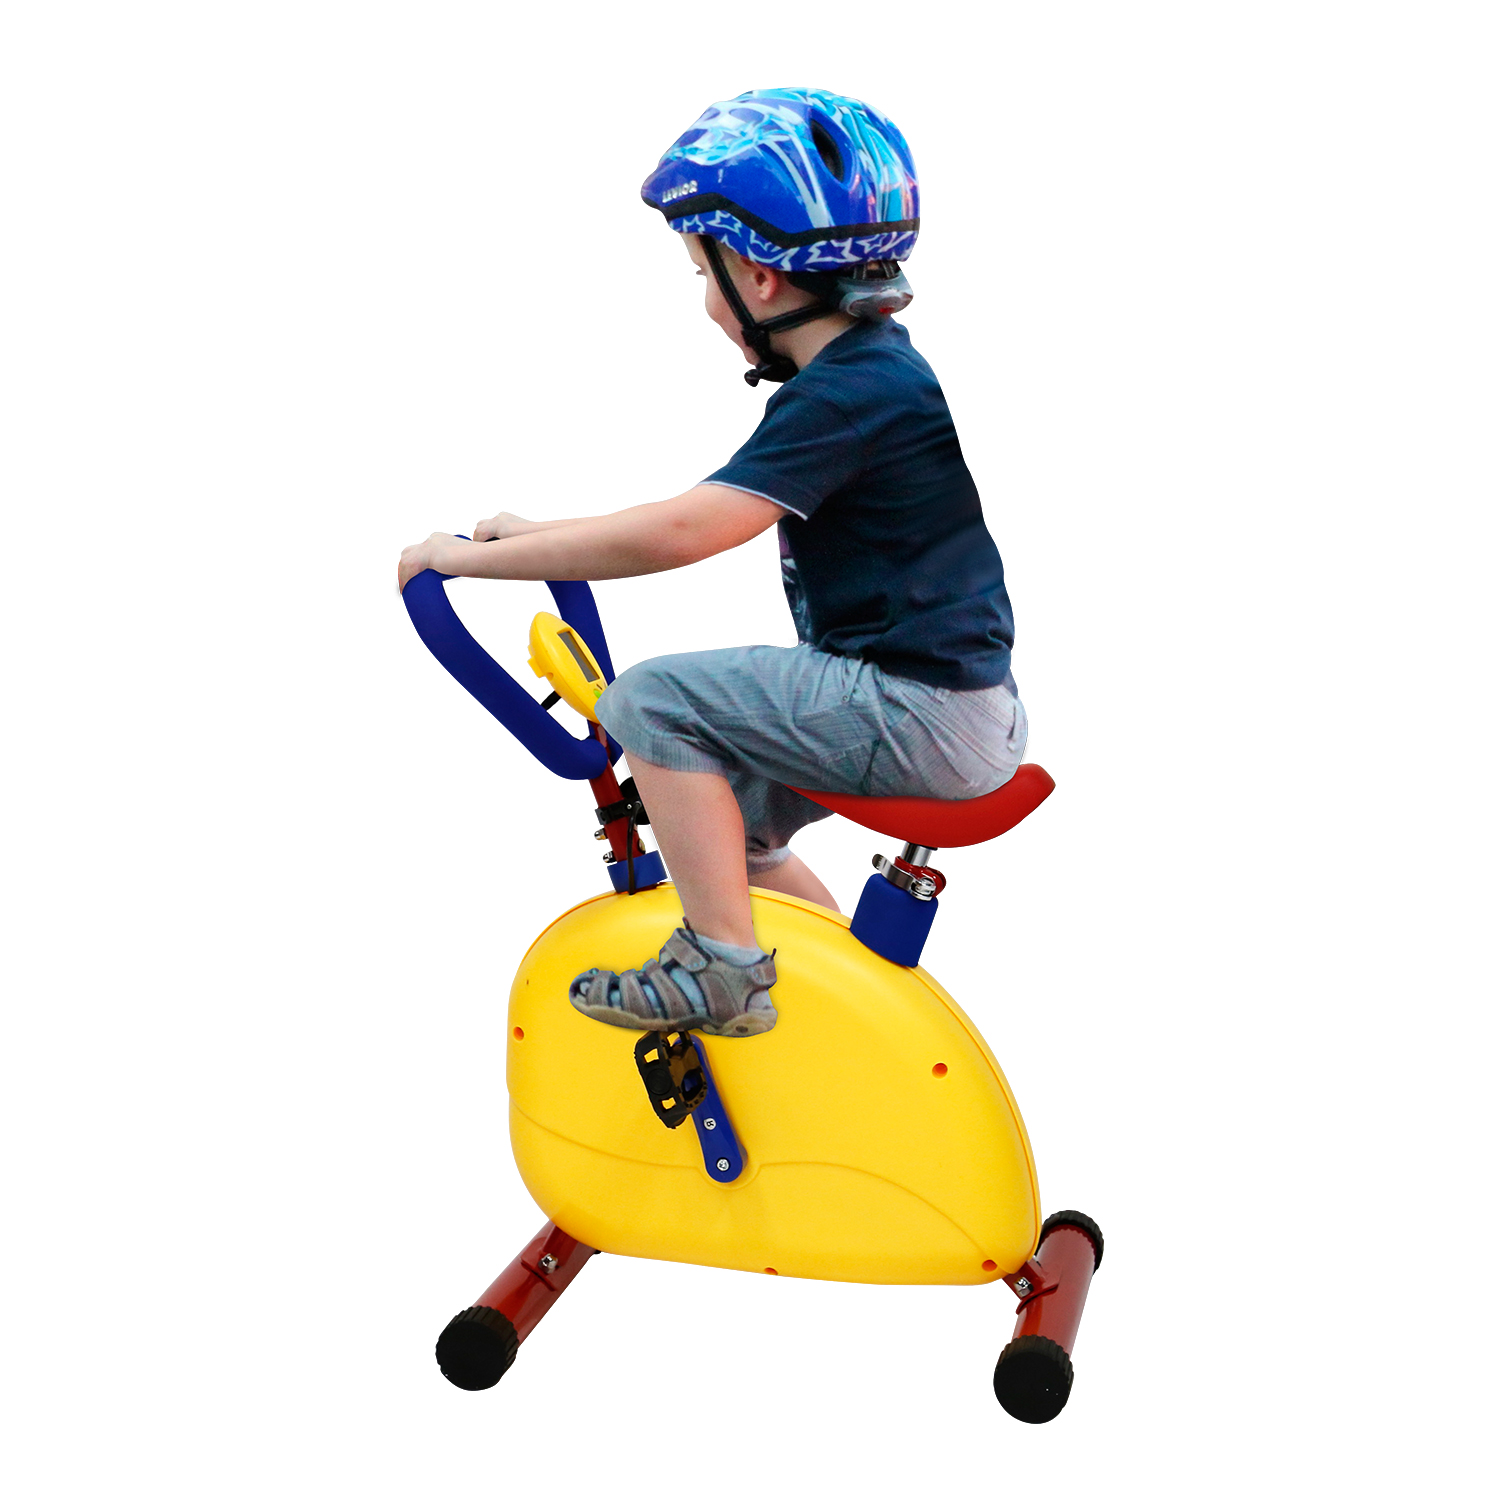 Kinbor Fun and Fitness Exercise Equipment for Kids Children Happy Ride Bike Cycling Indoor